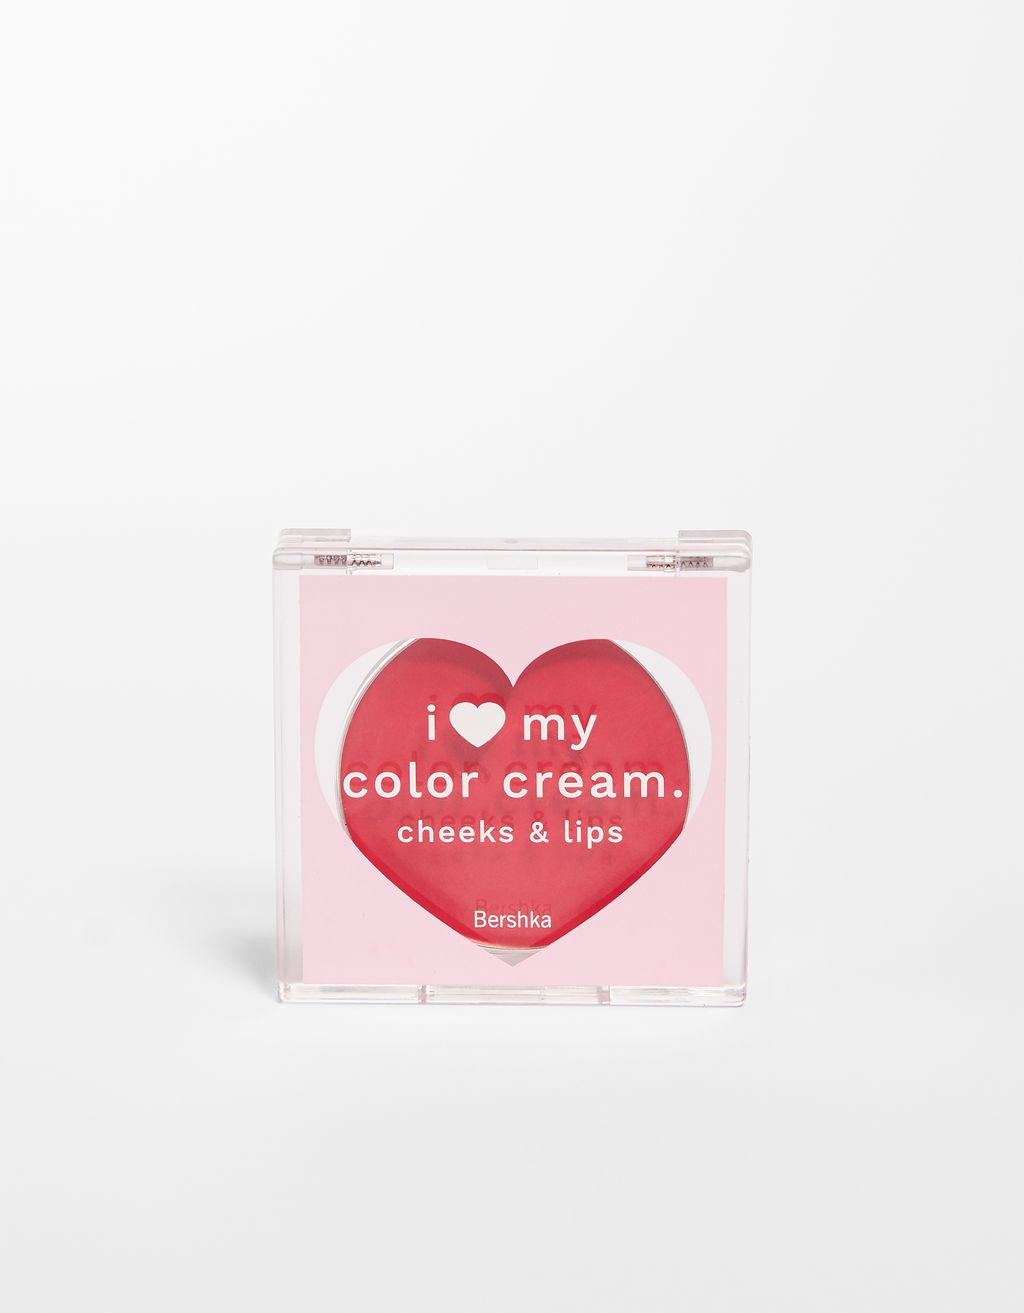 I ❤ MY COLORE CREAM RED ROMANCE